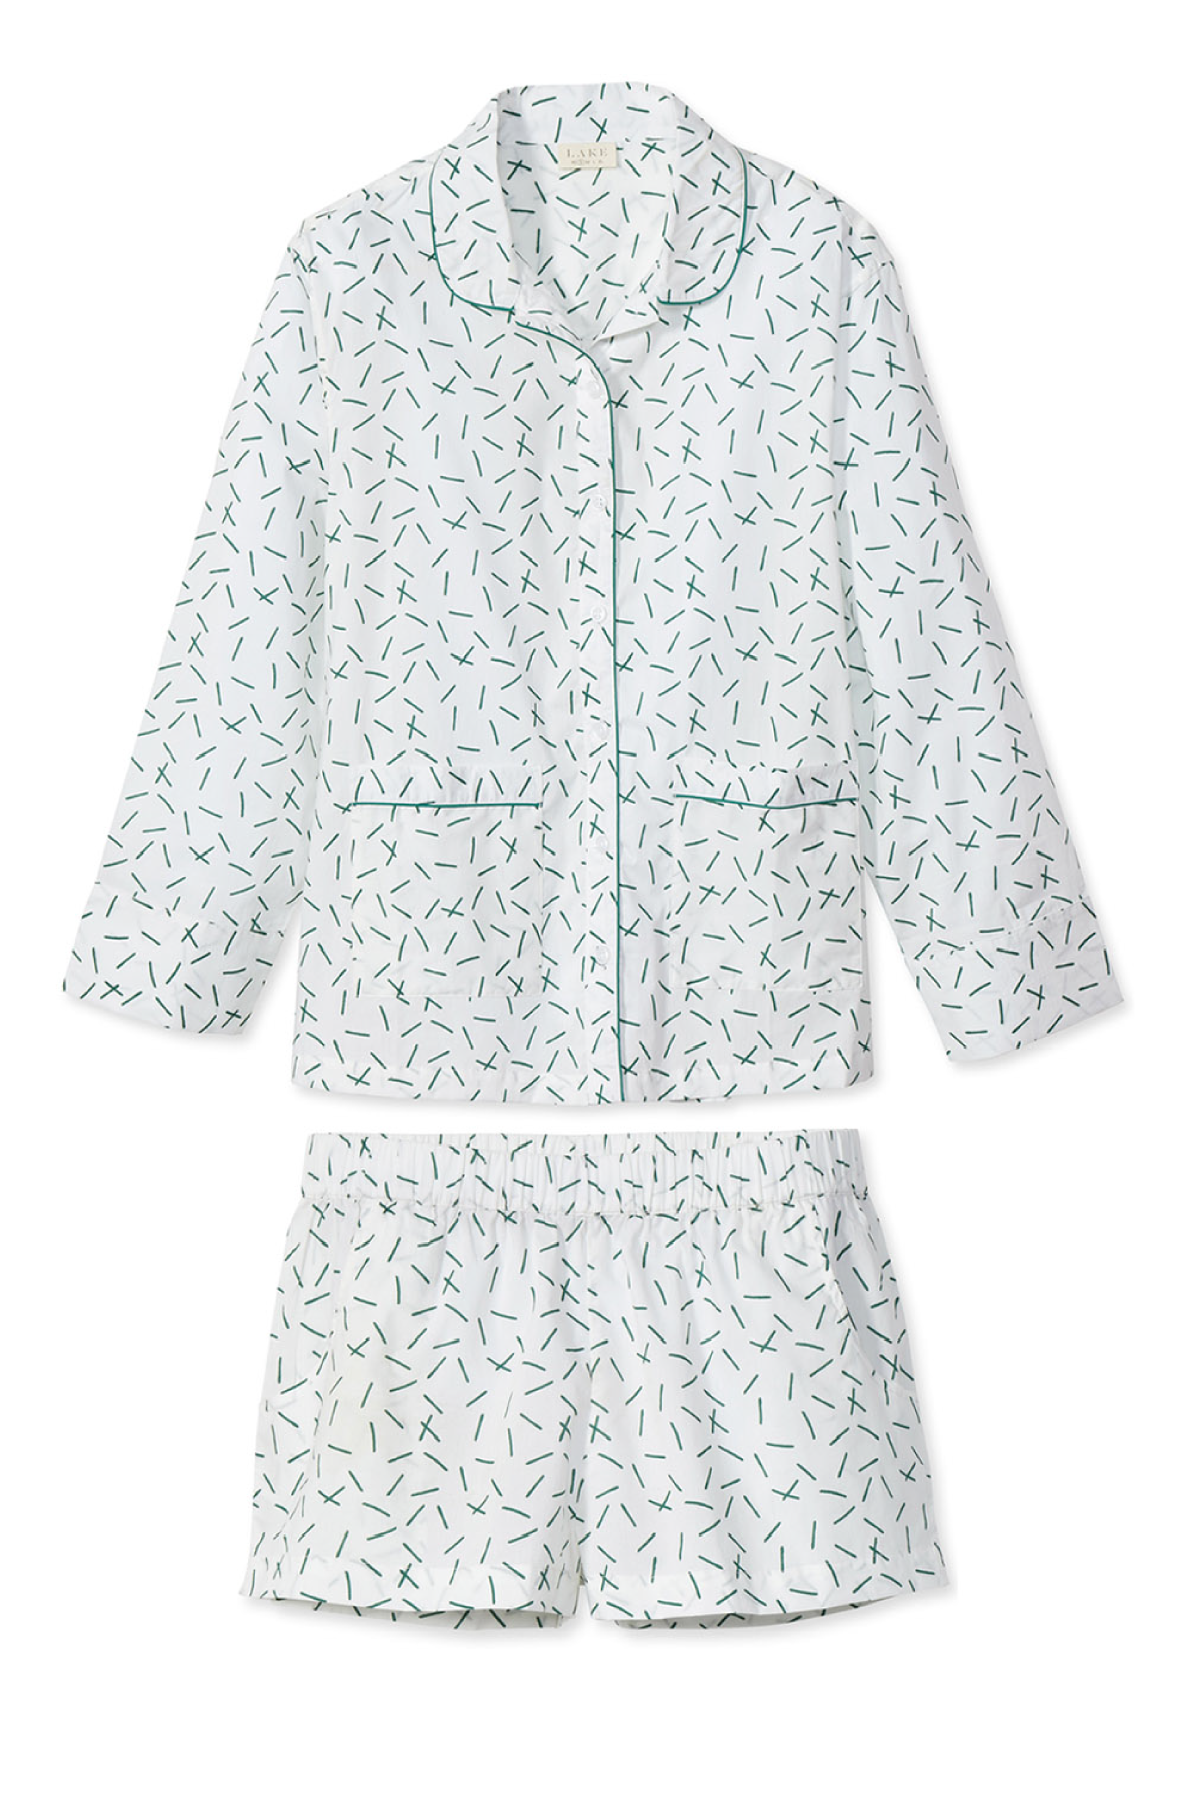 Poplin Shorts Set in Hedge